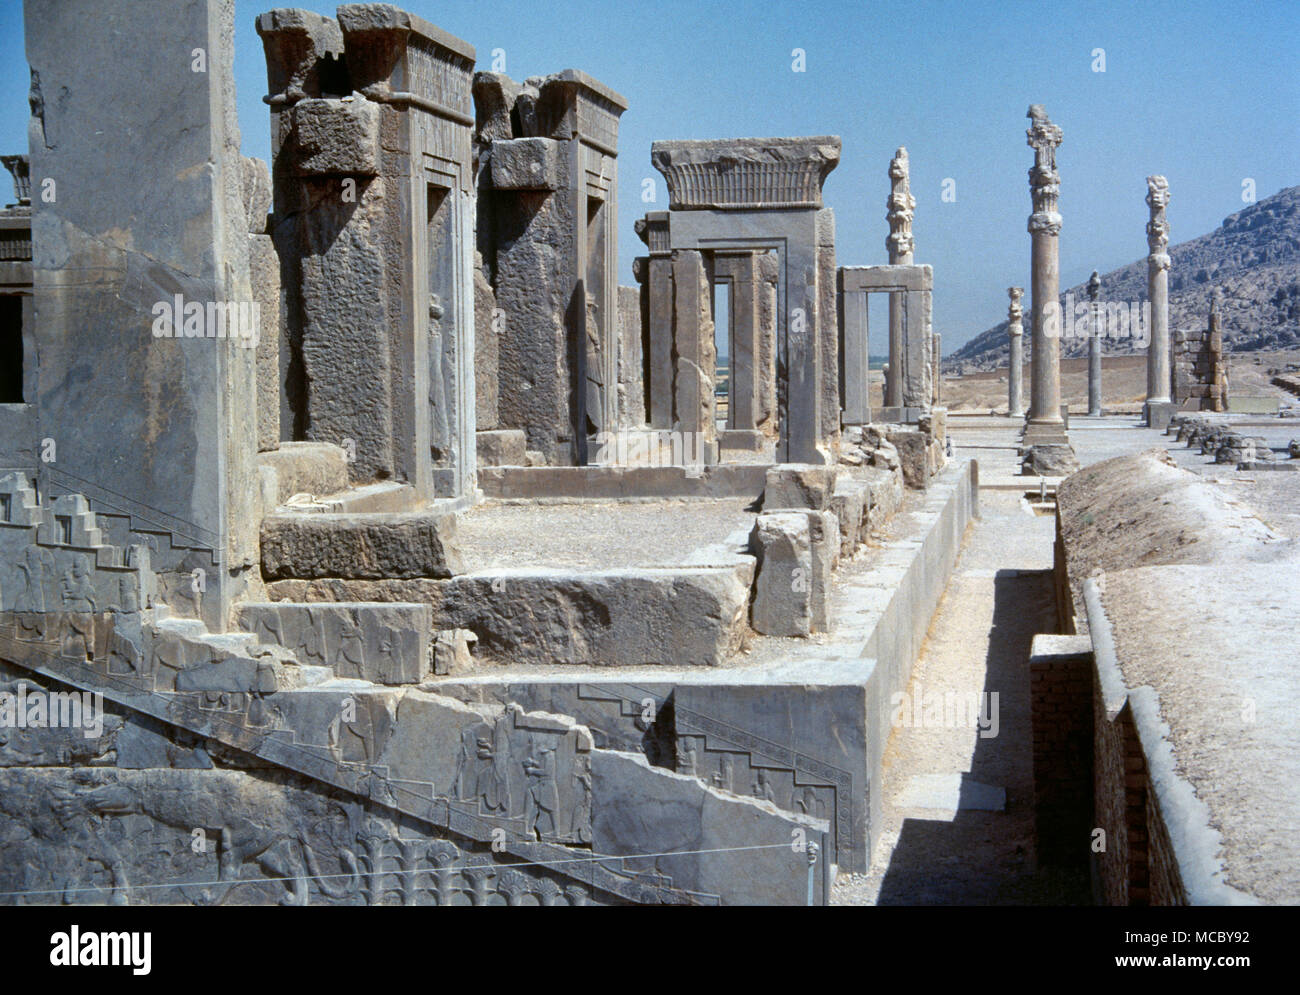 Persepolis. Tachara (Winter Palace) or Palace of Darius. Southwest of the Apadana. Era of Dario I (522-486 BC). Achaemenid style. Fars province, Iran. - Stock Image